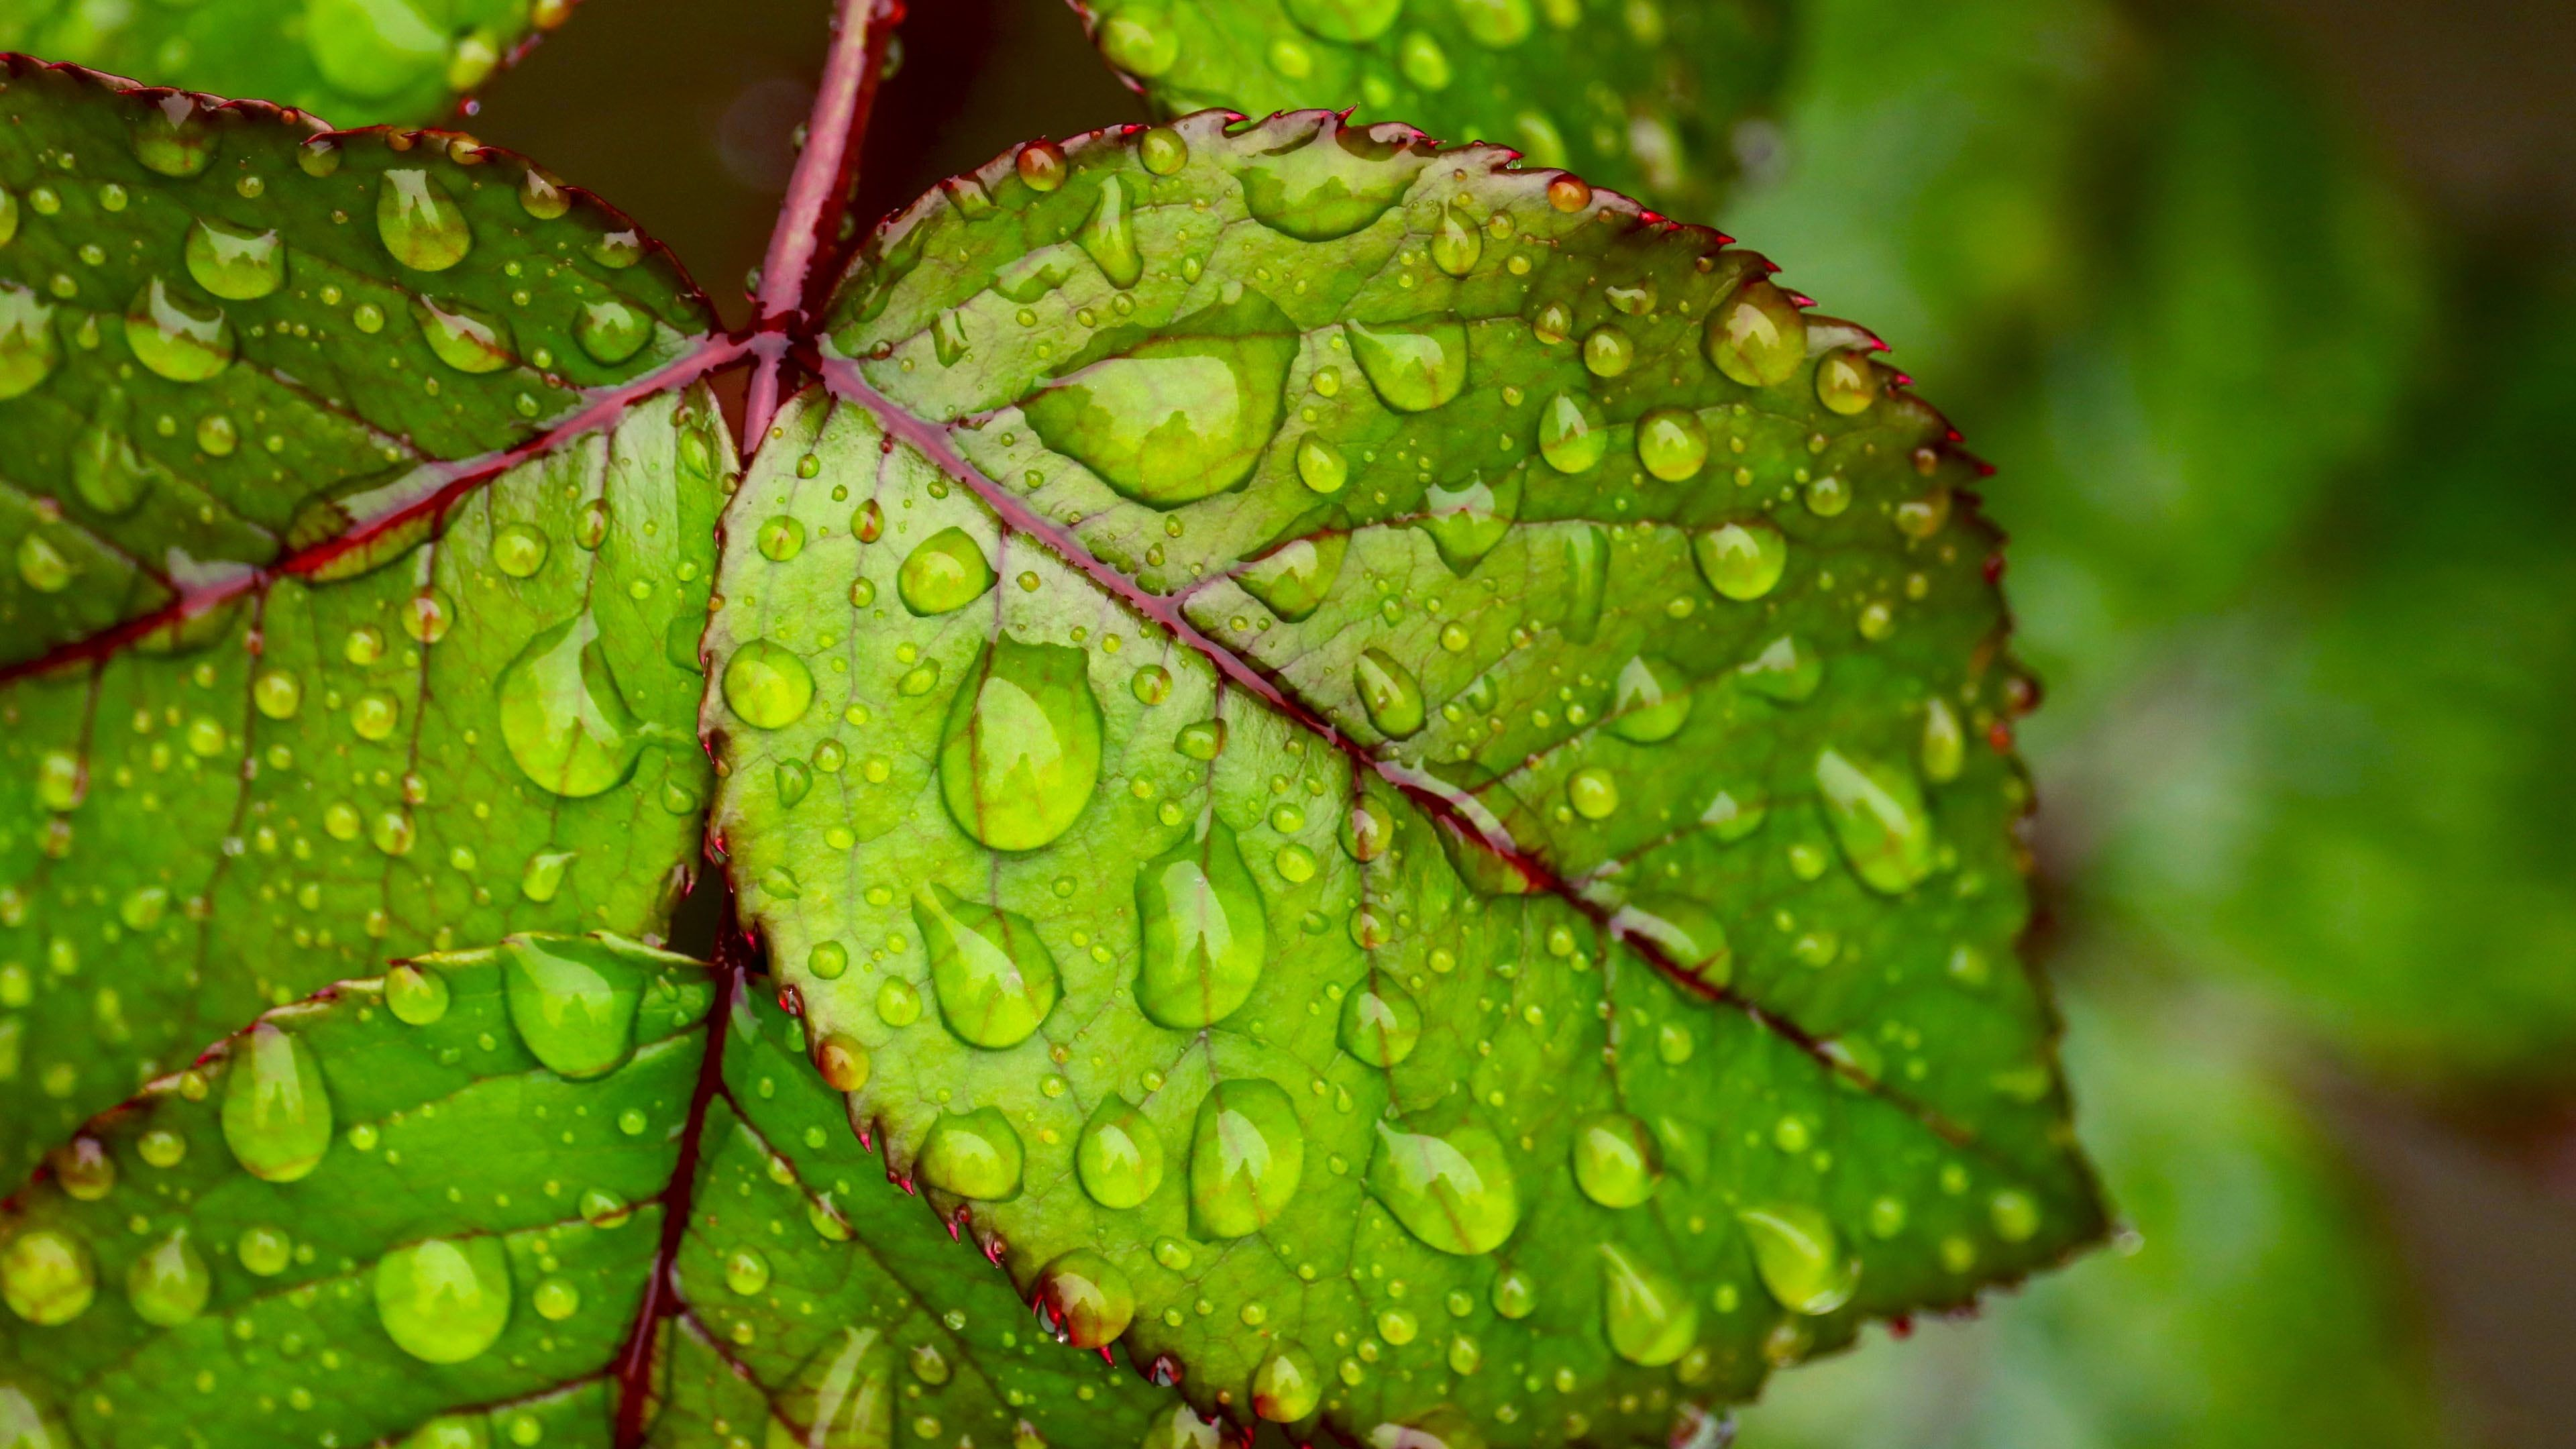 Water Droplets On Green Leaf 4k Ultra Hd Wallpapers For Mobile Phones Tablet And Pc In 2020 4k Wallpapers For Pc Wallpapers For Mobile Phones Hd Wallpapers For Mobile